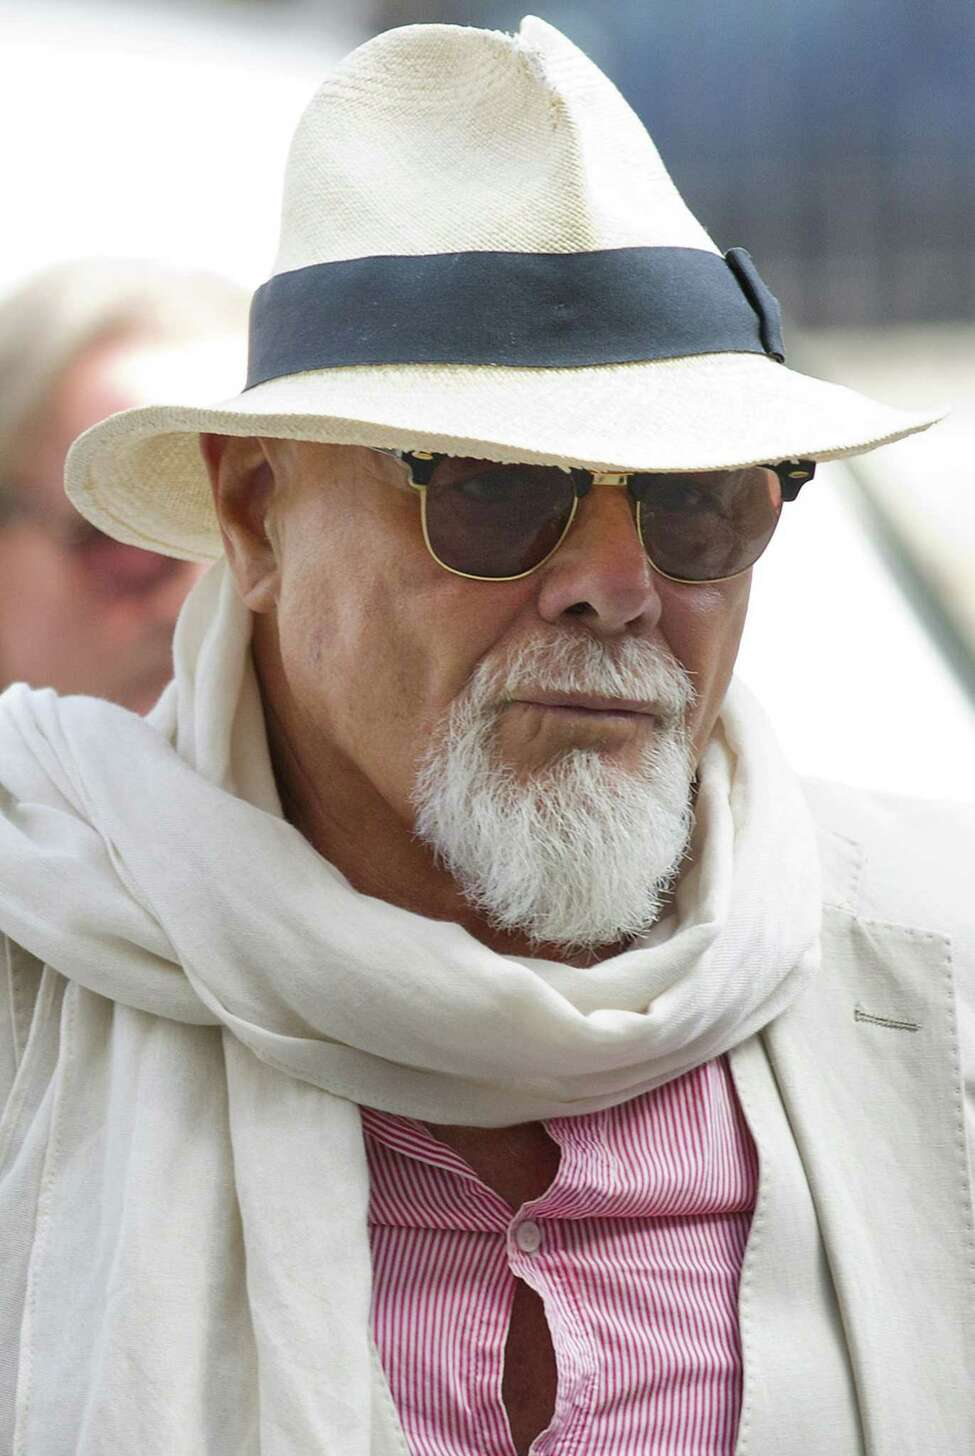 (FILES) In a file picture taken on June 19, 2014 British former pop star Gary Glitter, whose real name is Paul Gadd, arrives at Westminster Magistrates Court in London. Gad denied a string of sex offences against three underage girls as he appeared in a London court on November 11, 2014 and will face trial in January 2015. The 1970s glam rocker faces a total of 10 charges related to the alleged crimes committed between 1975 and 1980. AFP PHOTO / JUSTIN TALLISJUSTIN TALLIS/AFP/Getty Images ORG XMIT: 1711